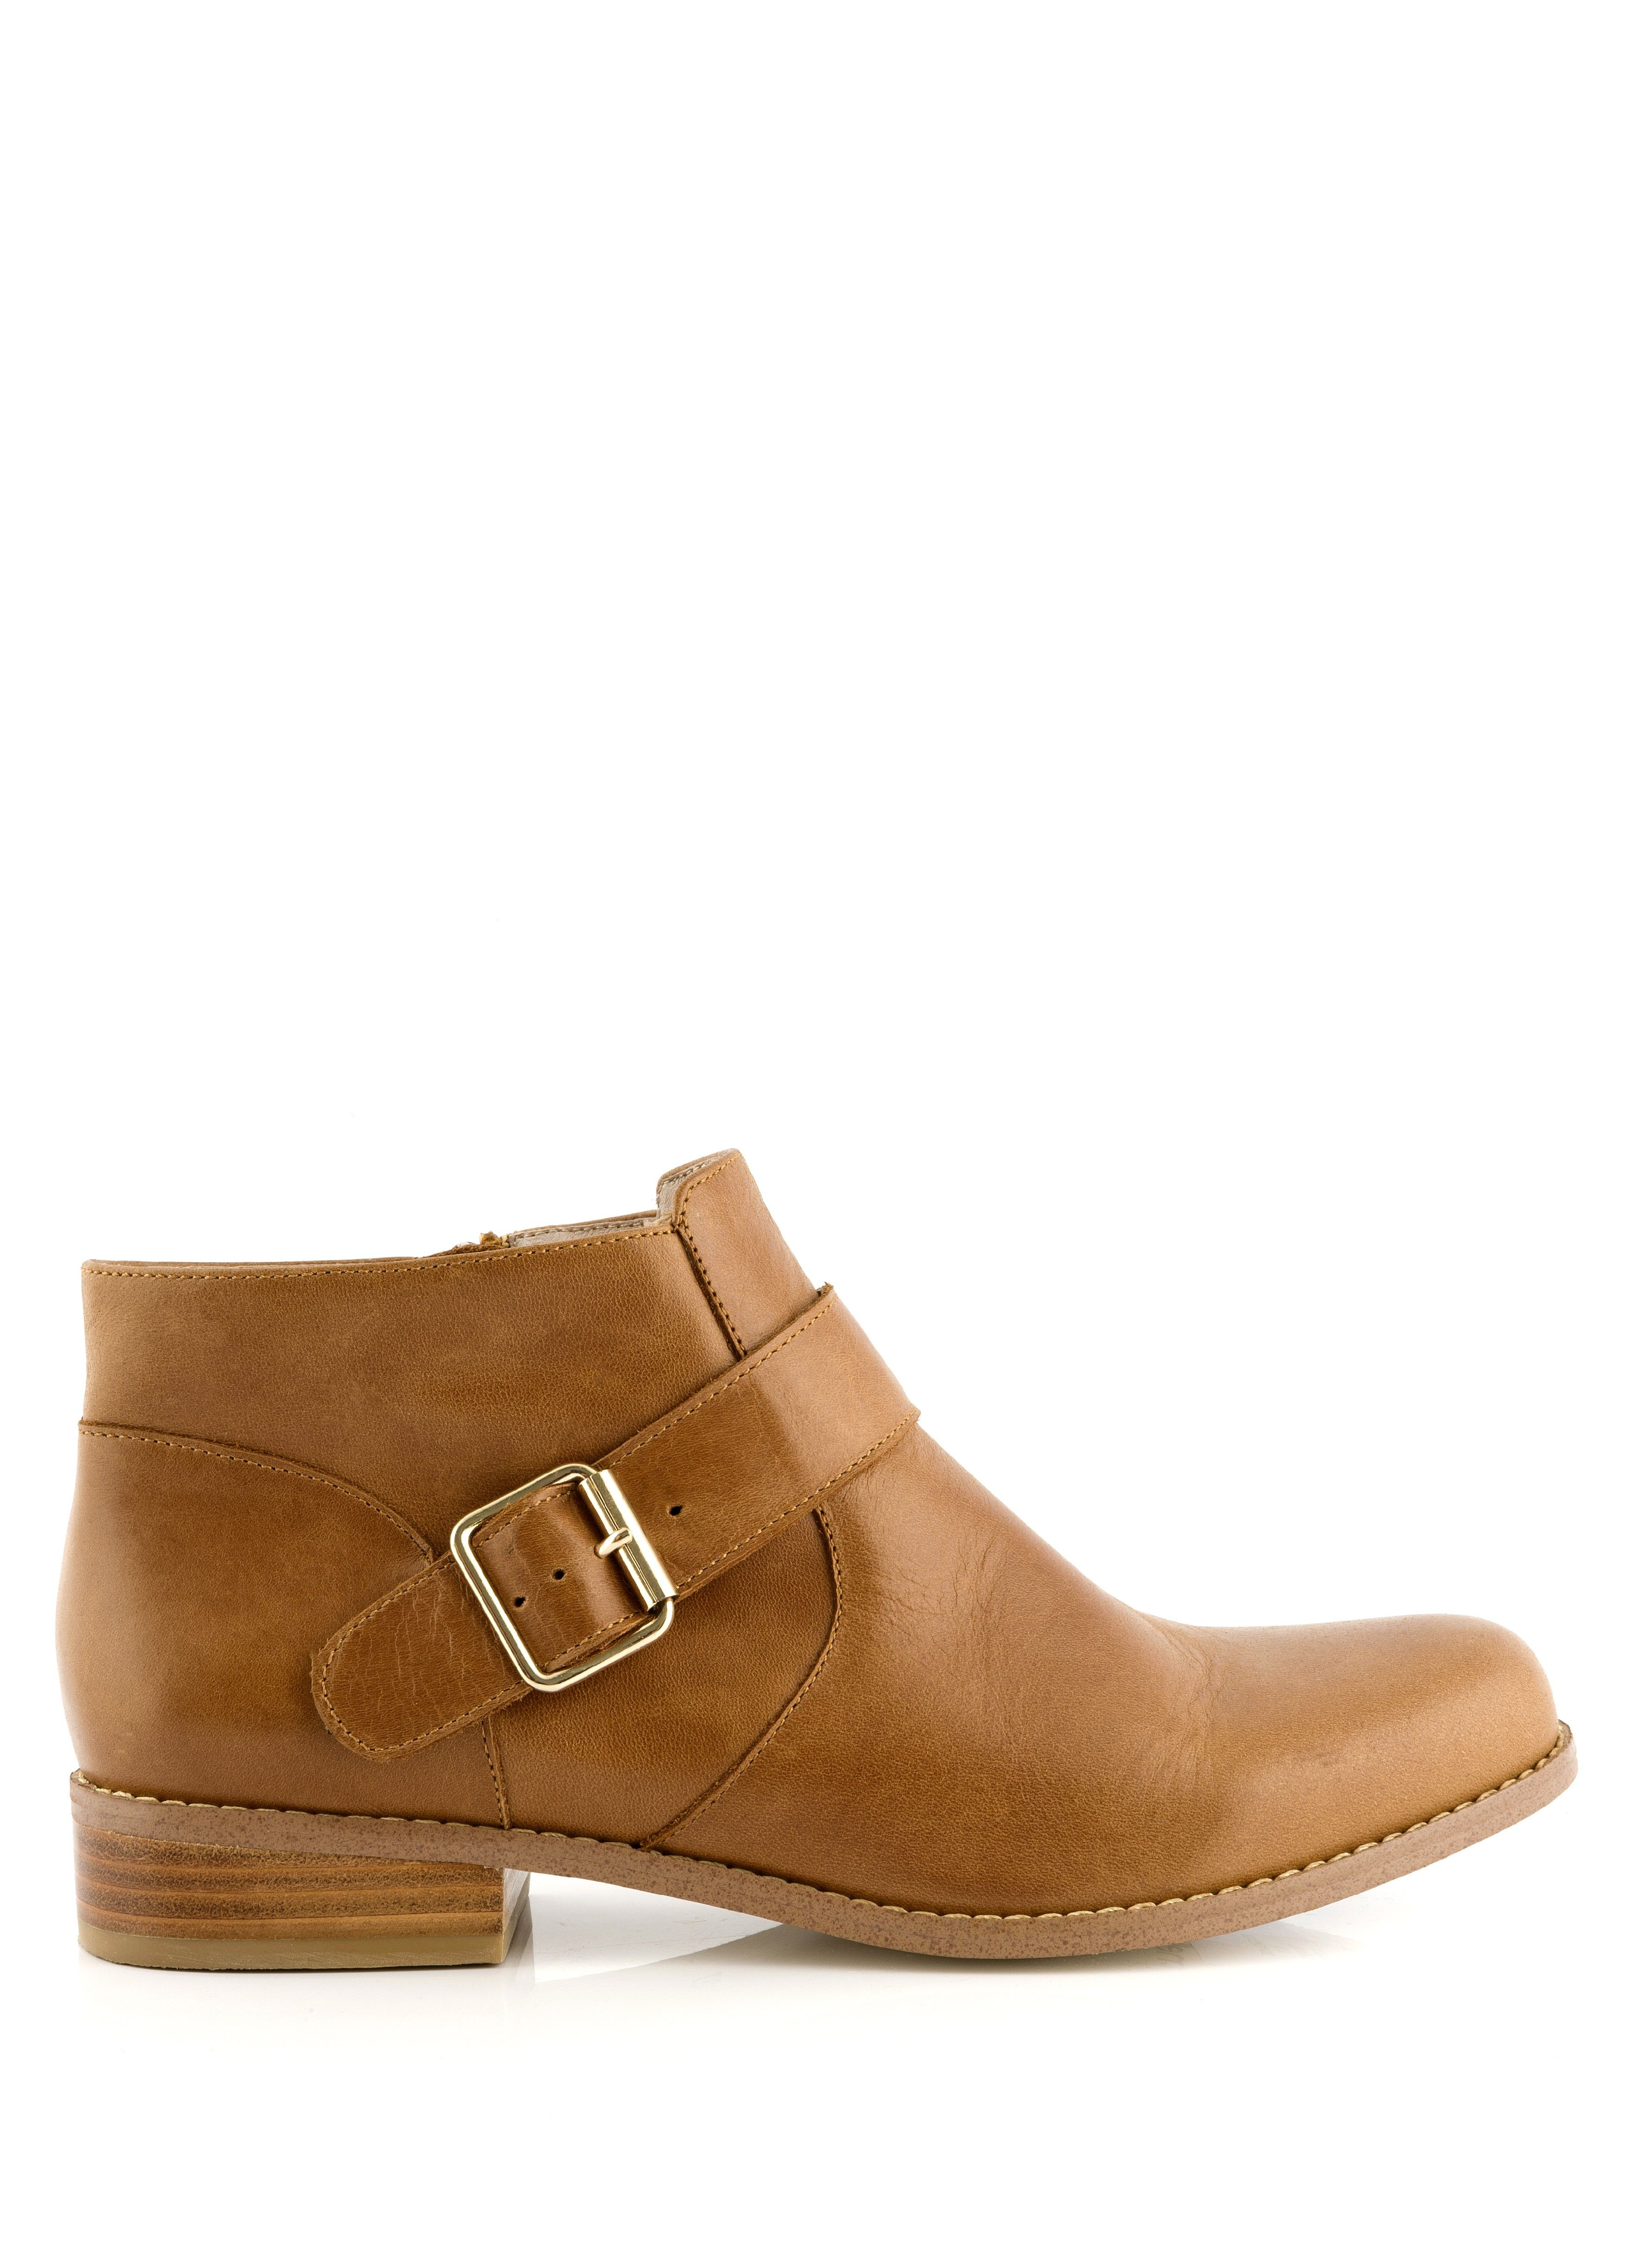 680da0f8aa2f0 Bottine POST Camel - Bottines - CHAUSSURES FEMME - FEMME